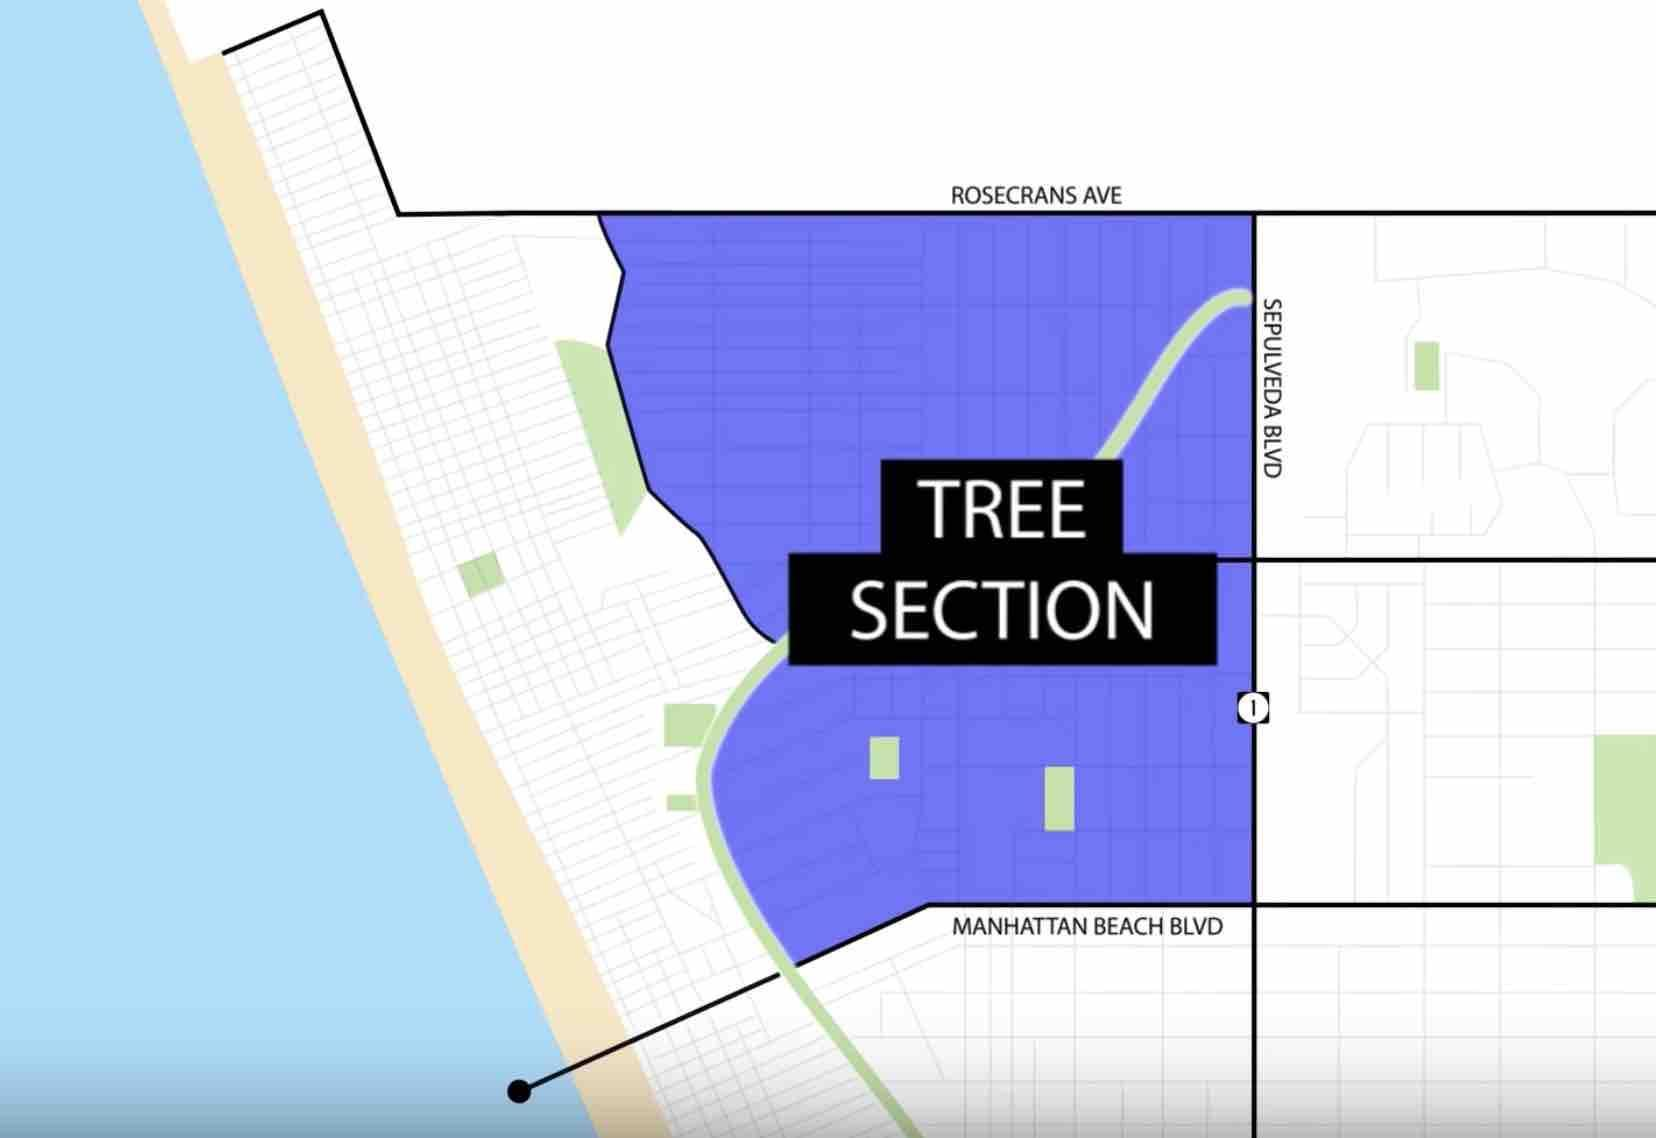 tree-section-manhattan-beach-map